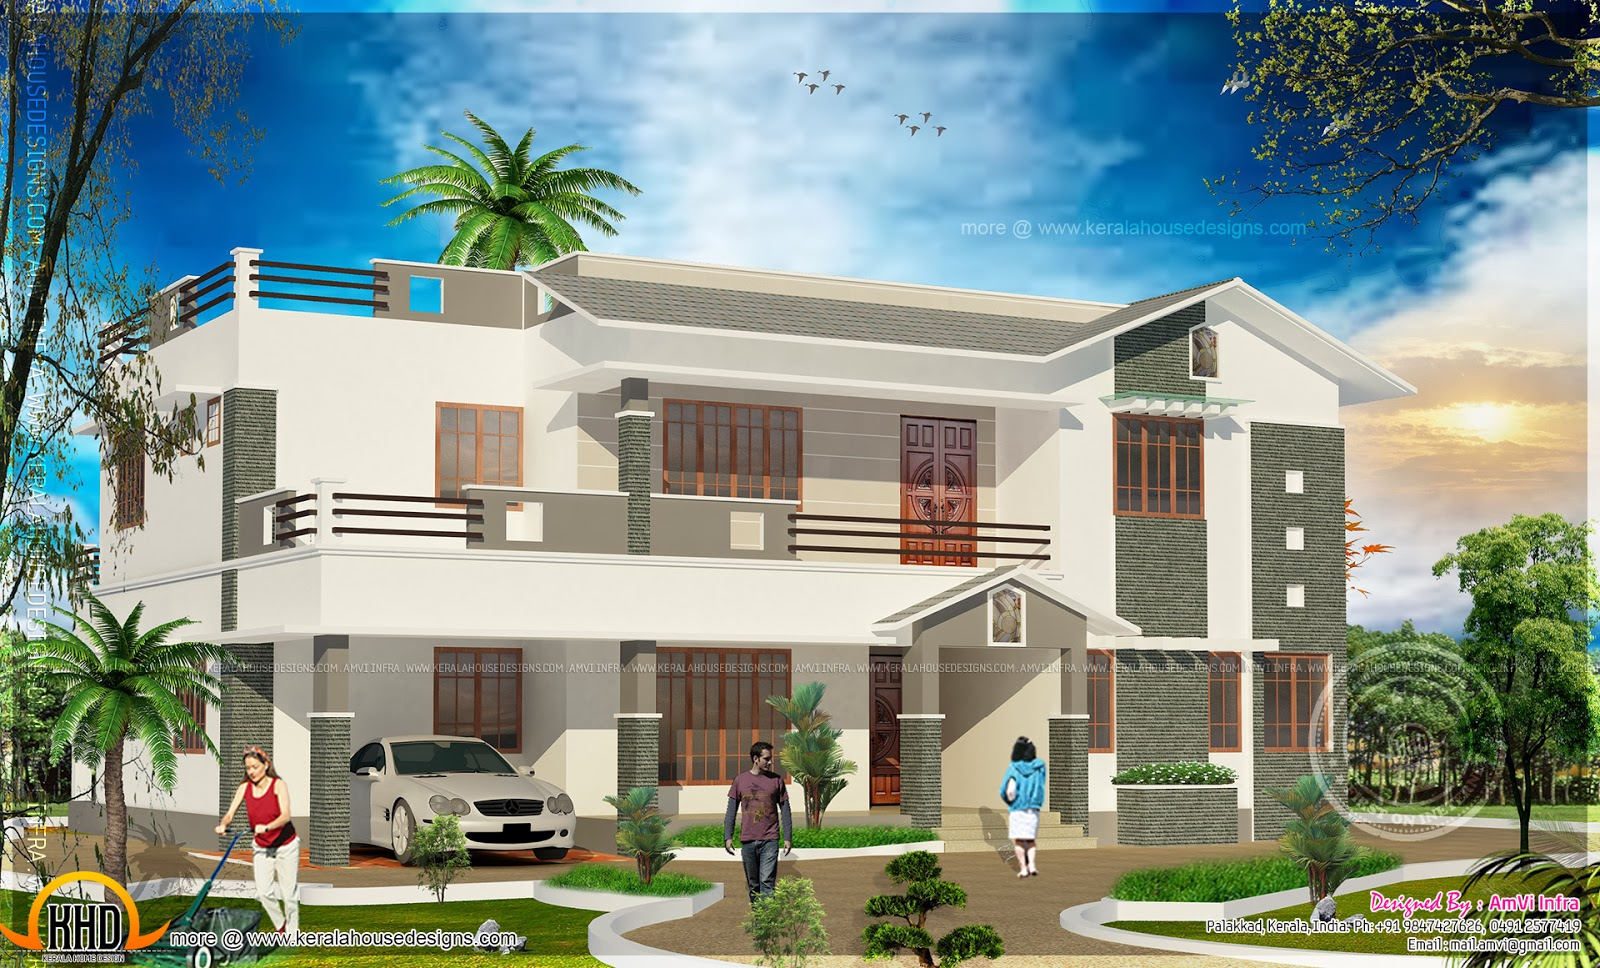 5 bedroom house elevation with floor plan kerala home for 5 bedroom house